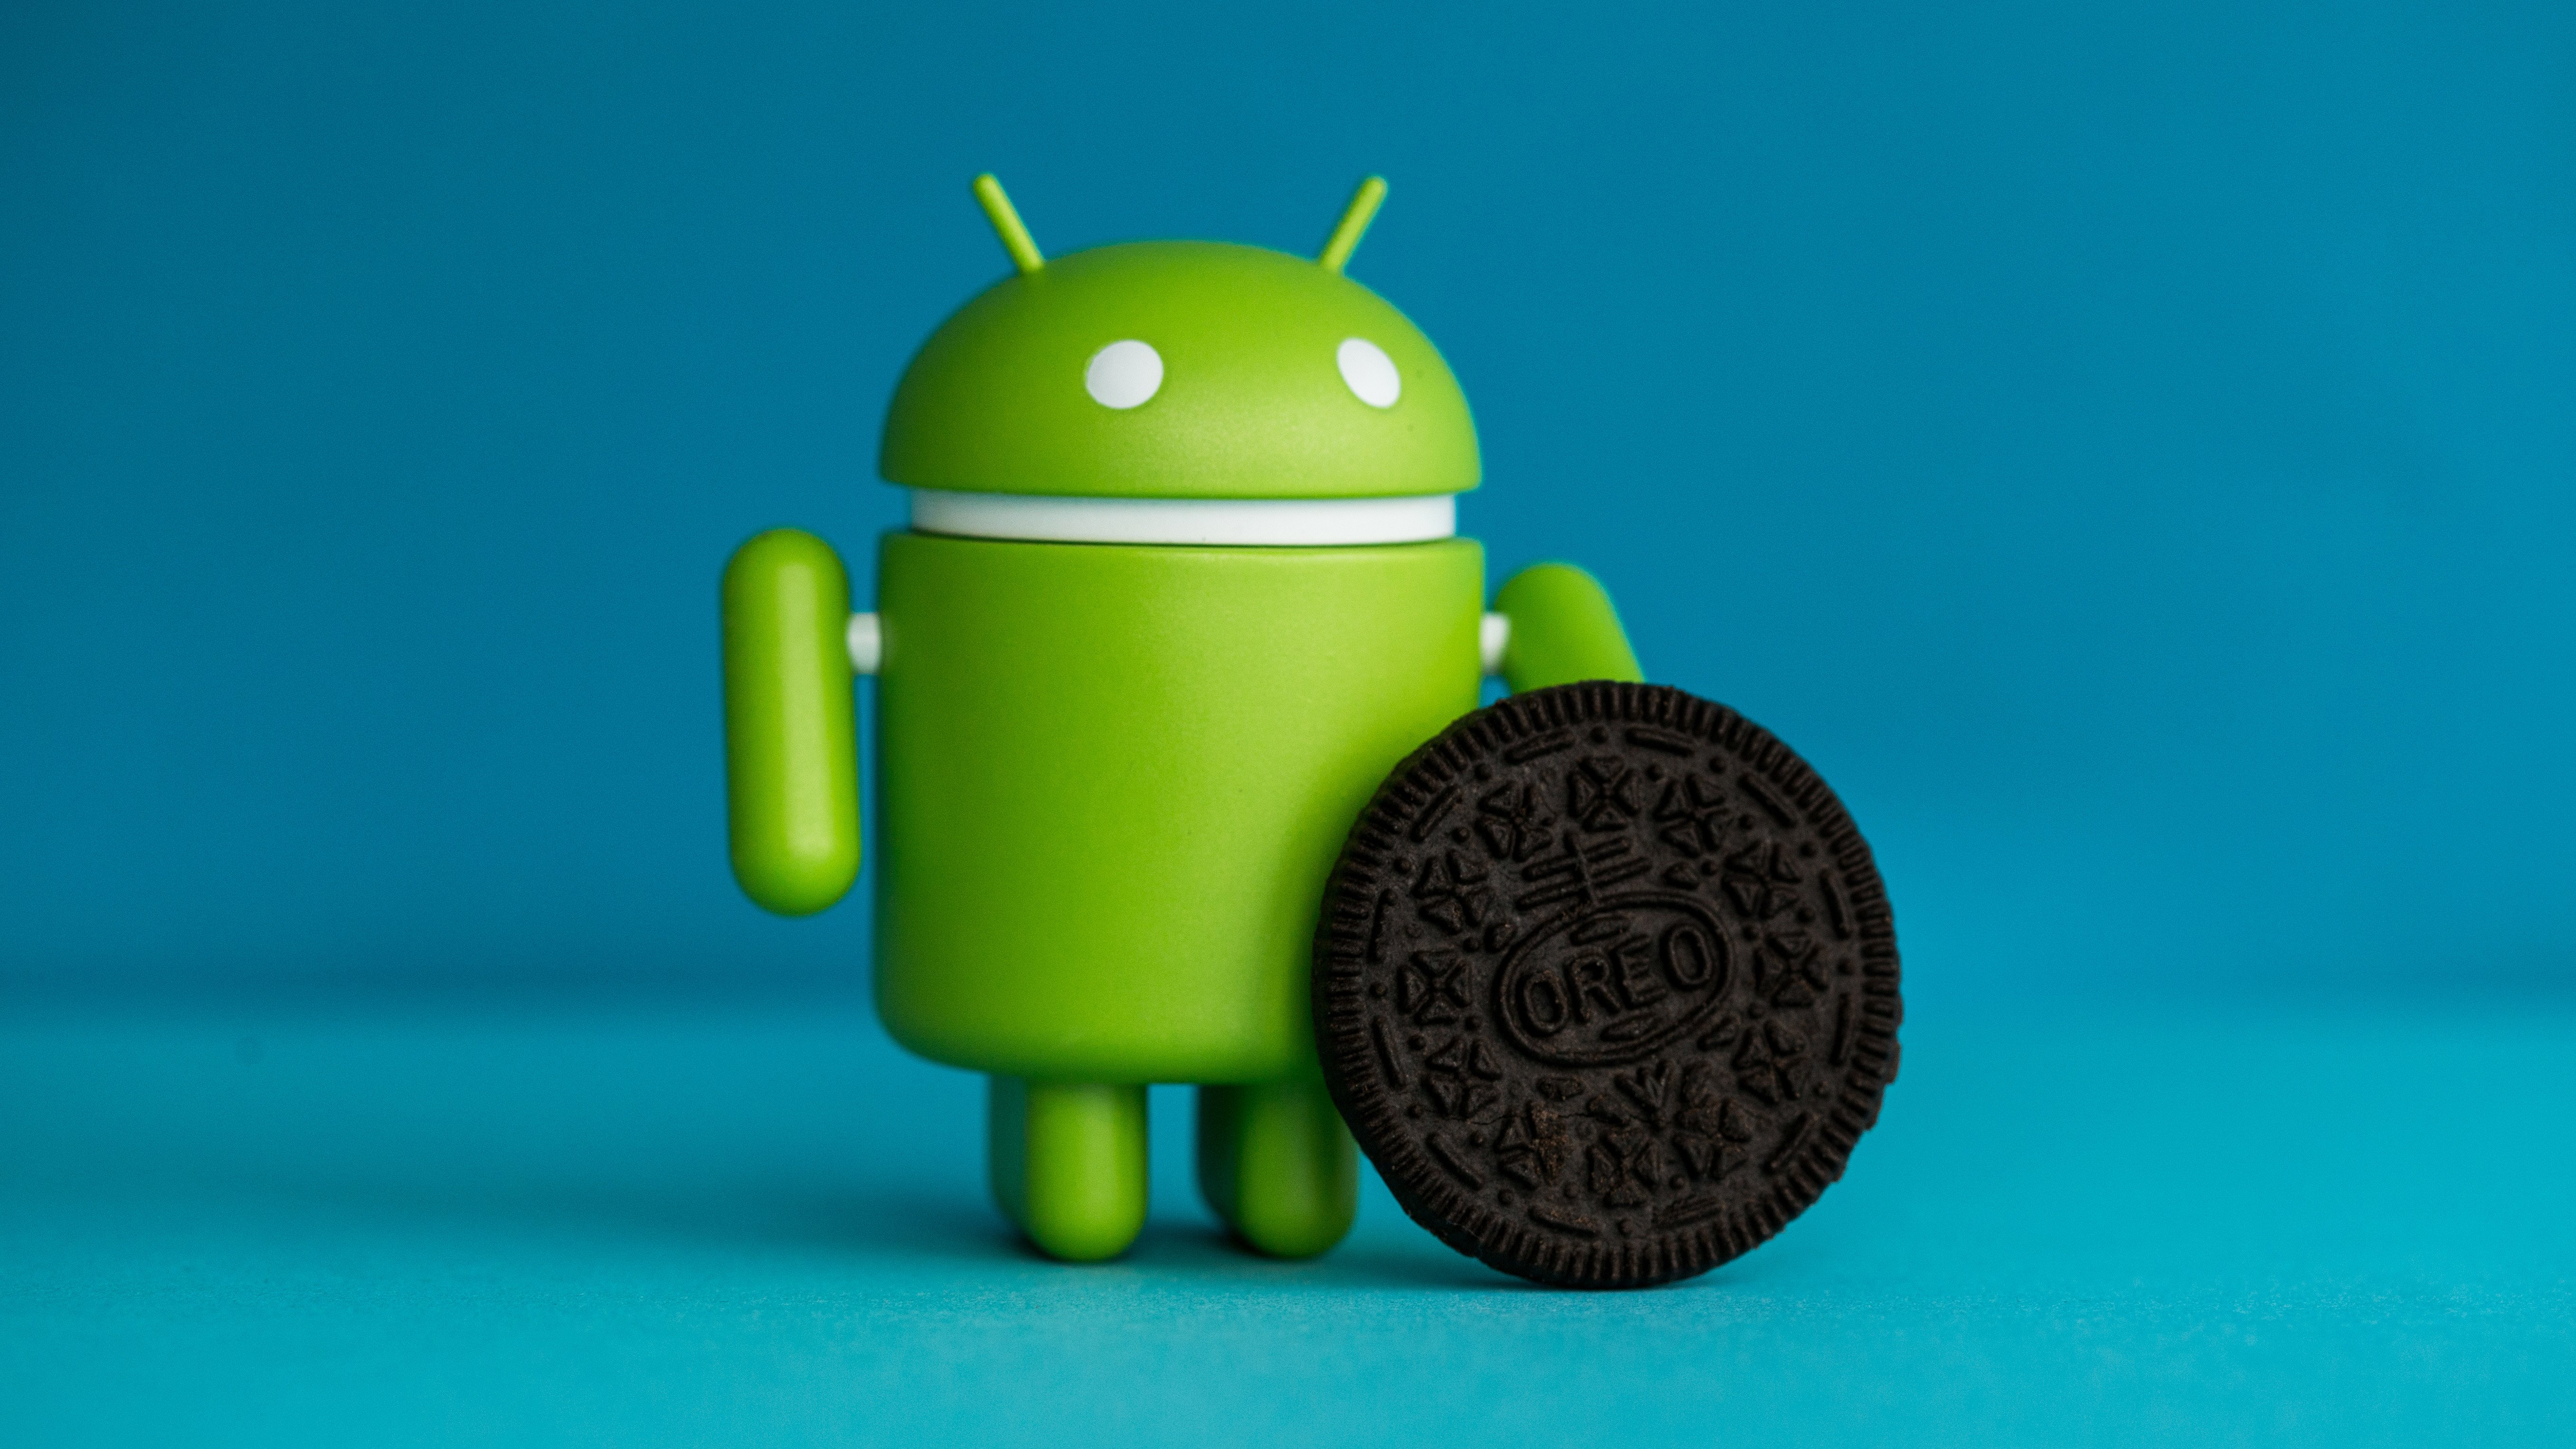 Android Oreo 8.1: No more gues...